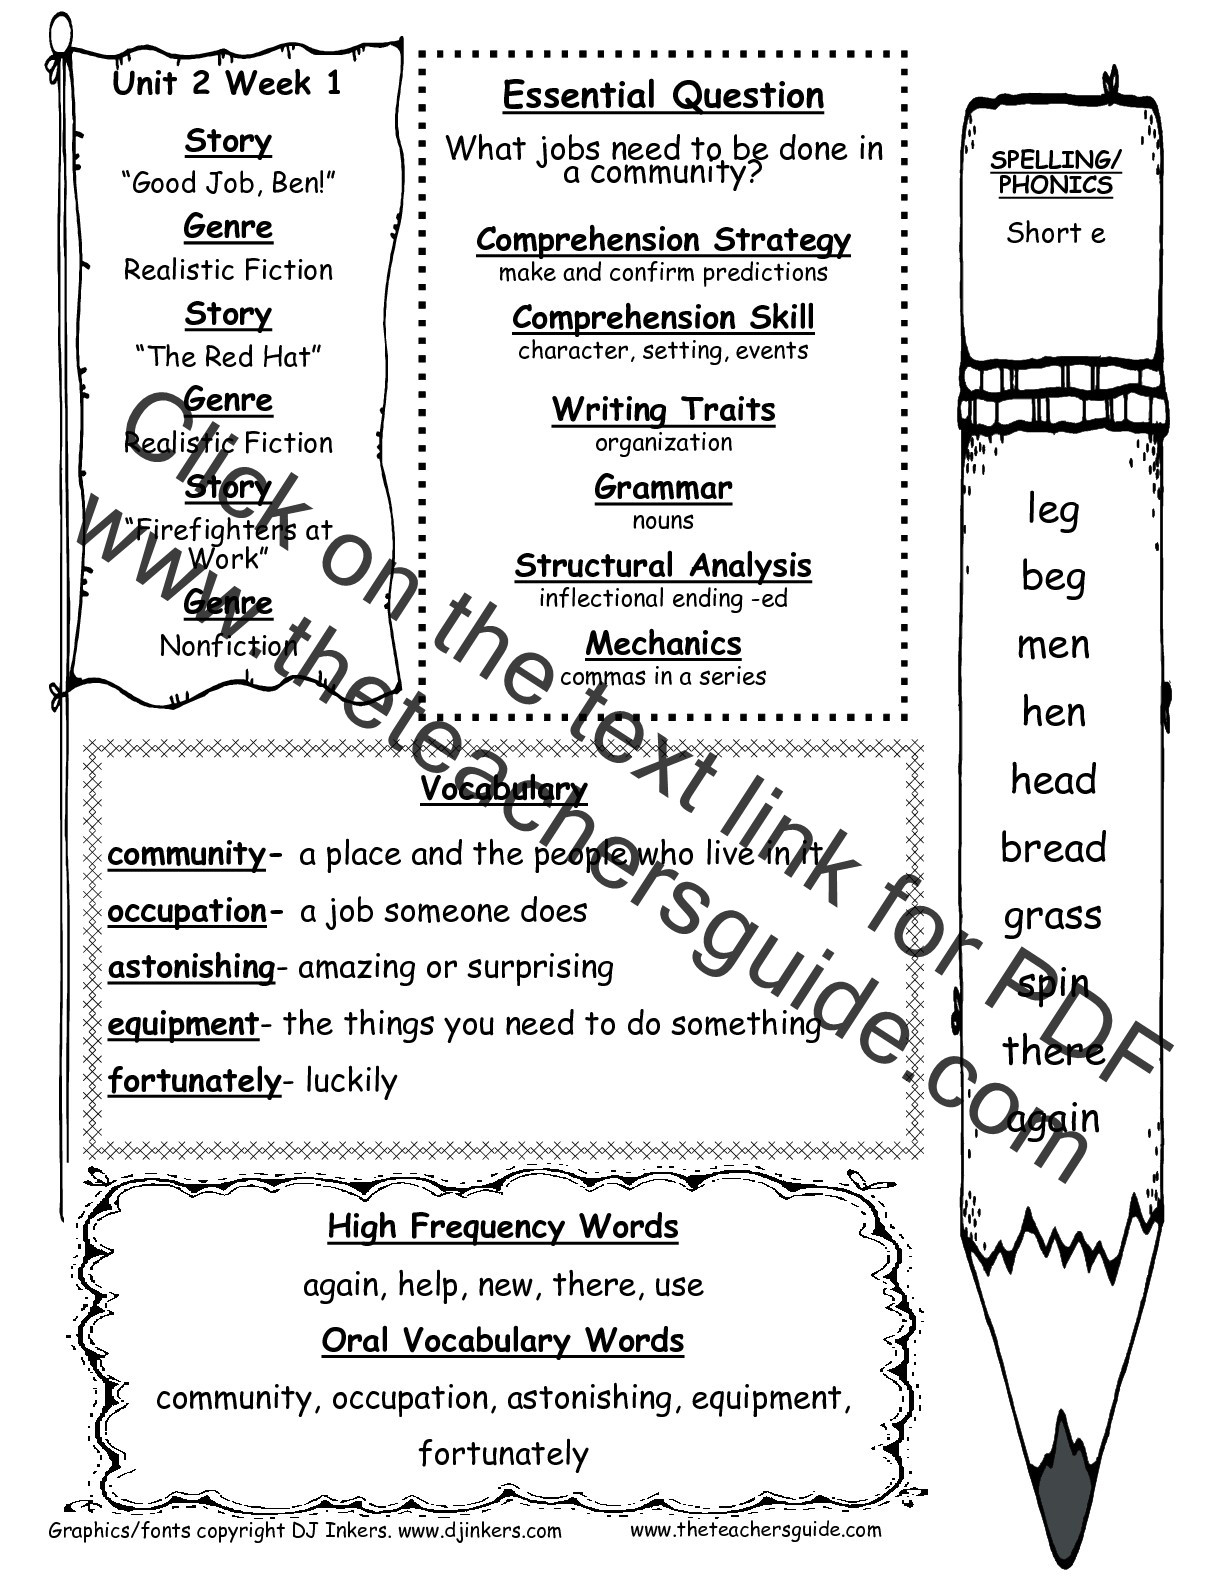 Predictions Worksheets 1st Grade Mcgraw Hill Wonders First Grade Resources and Printouts